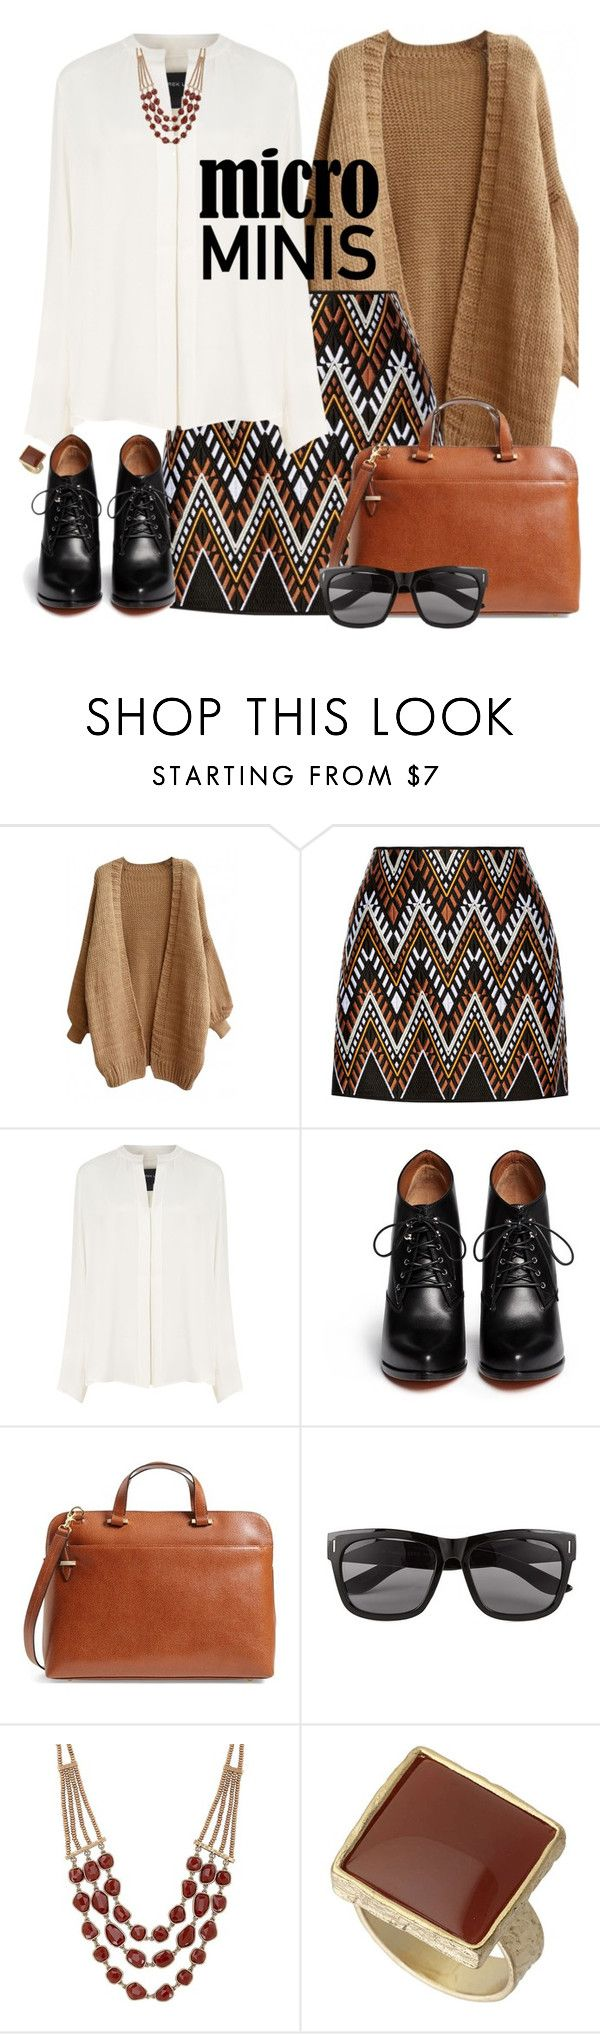 """""""micro mini skirts"""" by maria-maldonado ❤ liked on Polyvore featuring DKNY, Derek Lam, Givenchy, Lodis, Vero Moda, Lucky Brand, Dorothy Perkins and microminis"""